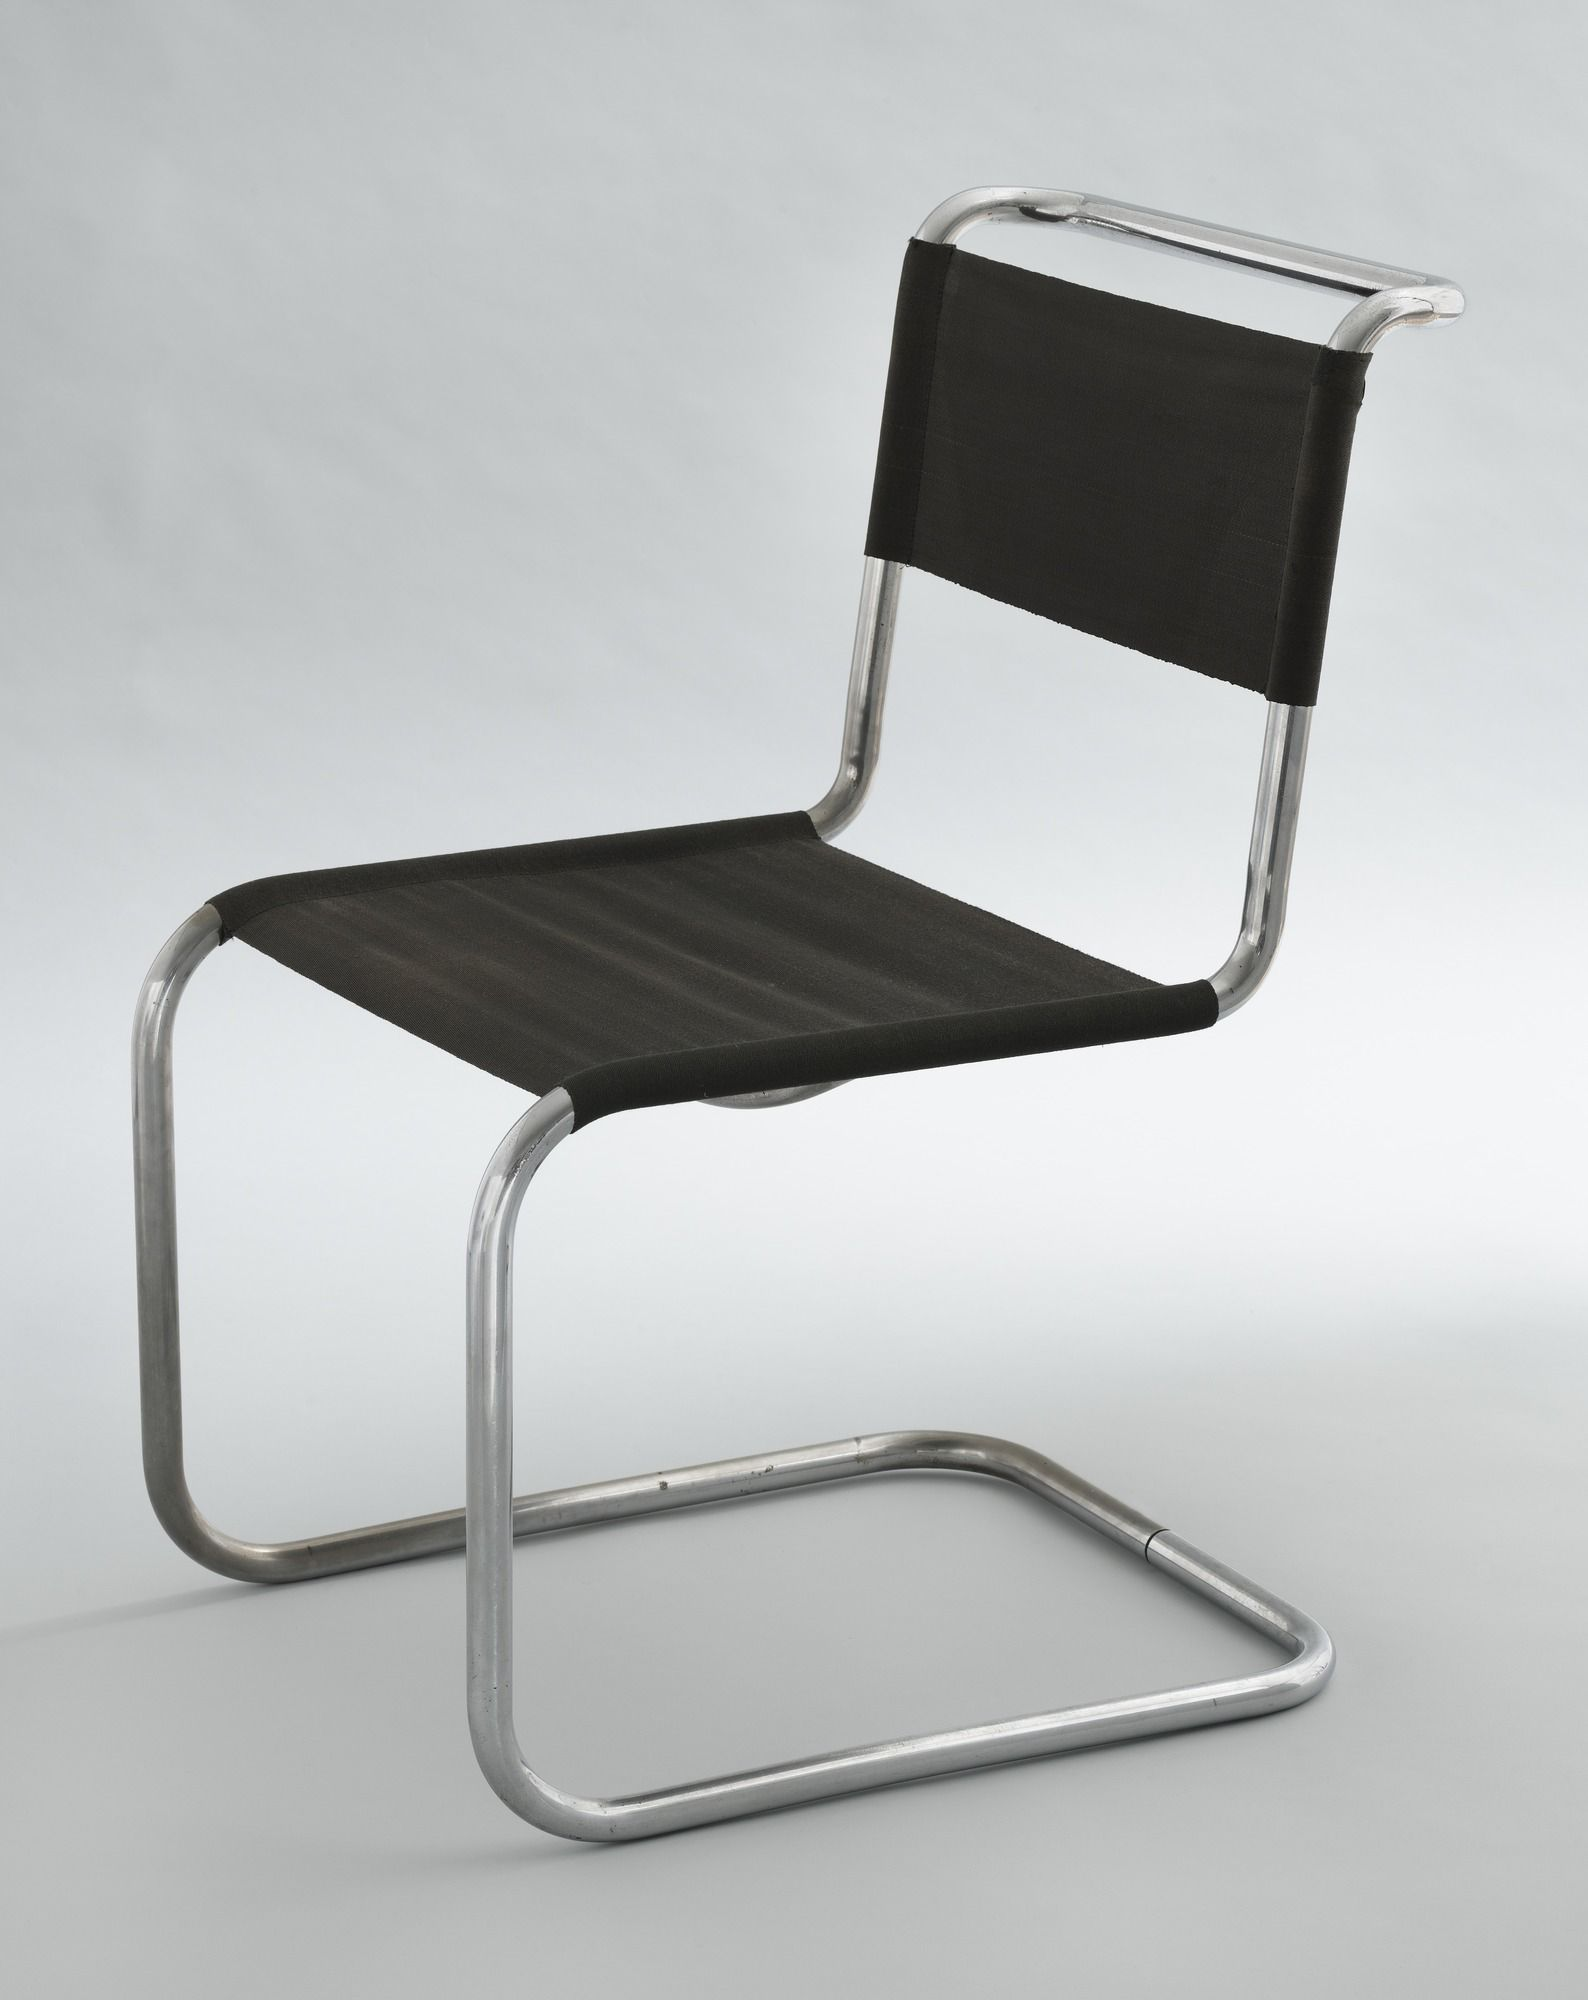 chair (model b33), marcel breuer, 1927-28. chrome-plated tubular